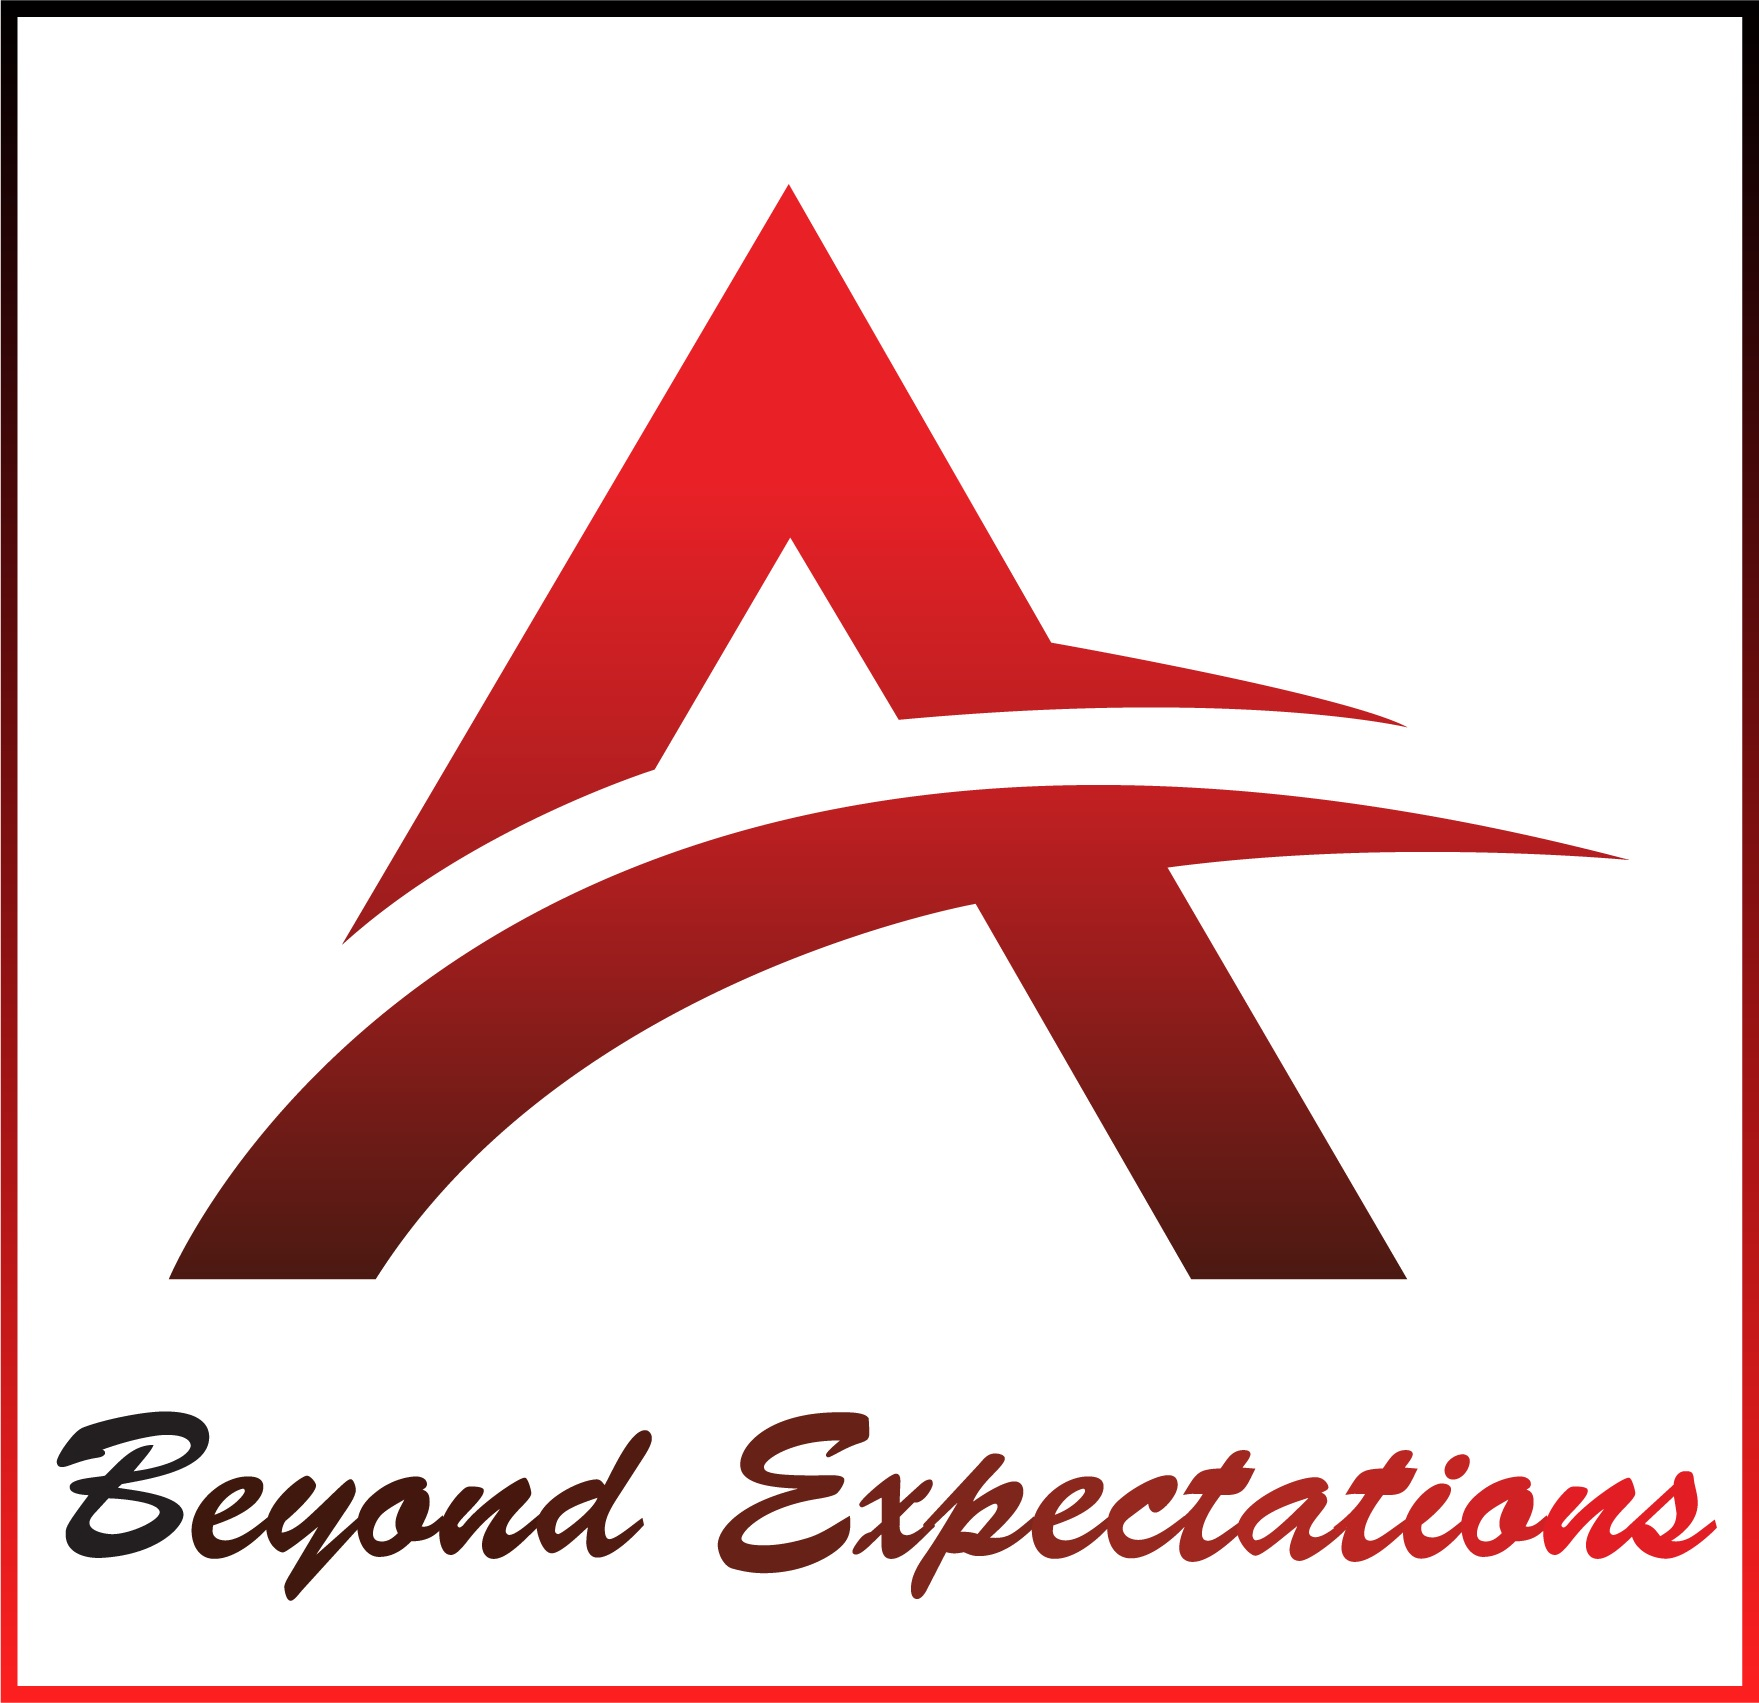 ABAAN Beyond Expectations